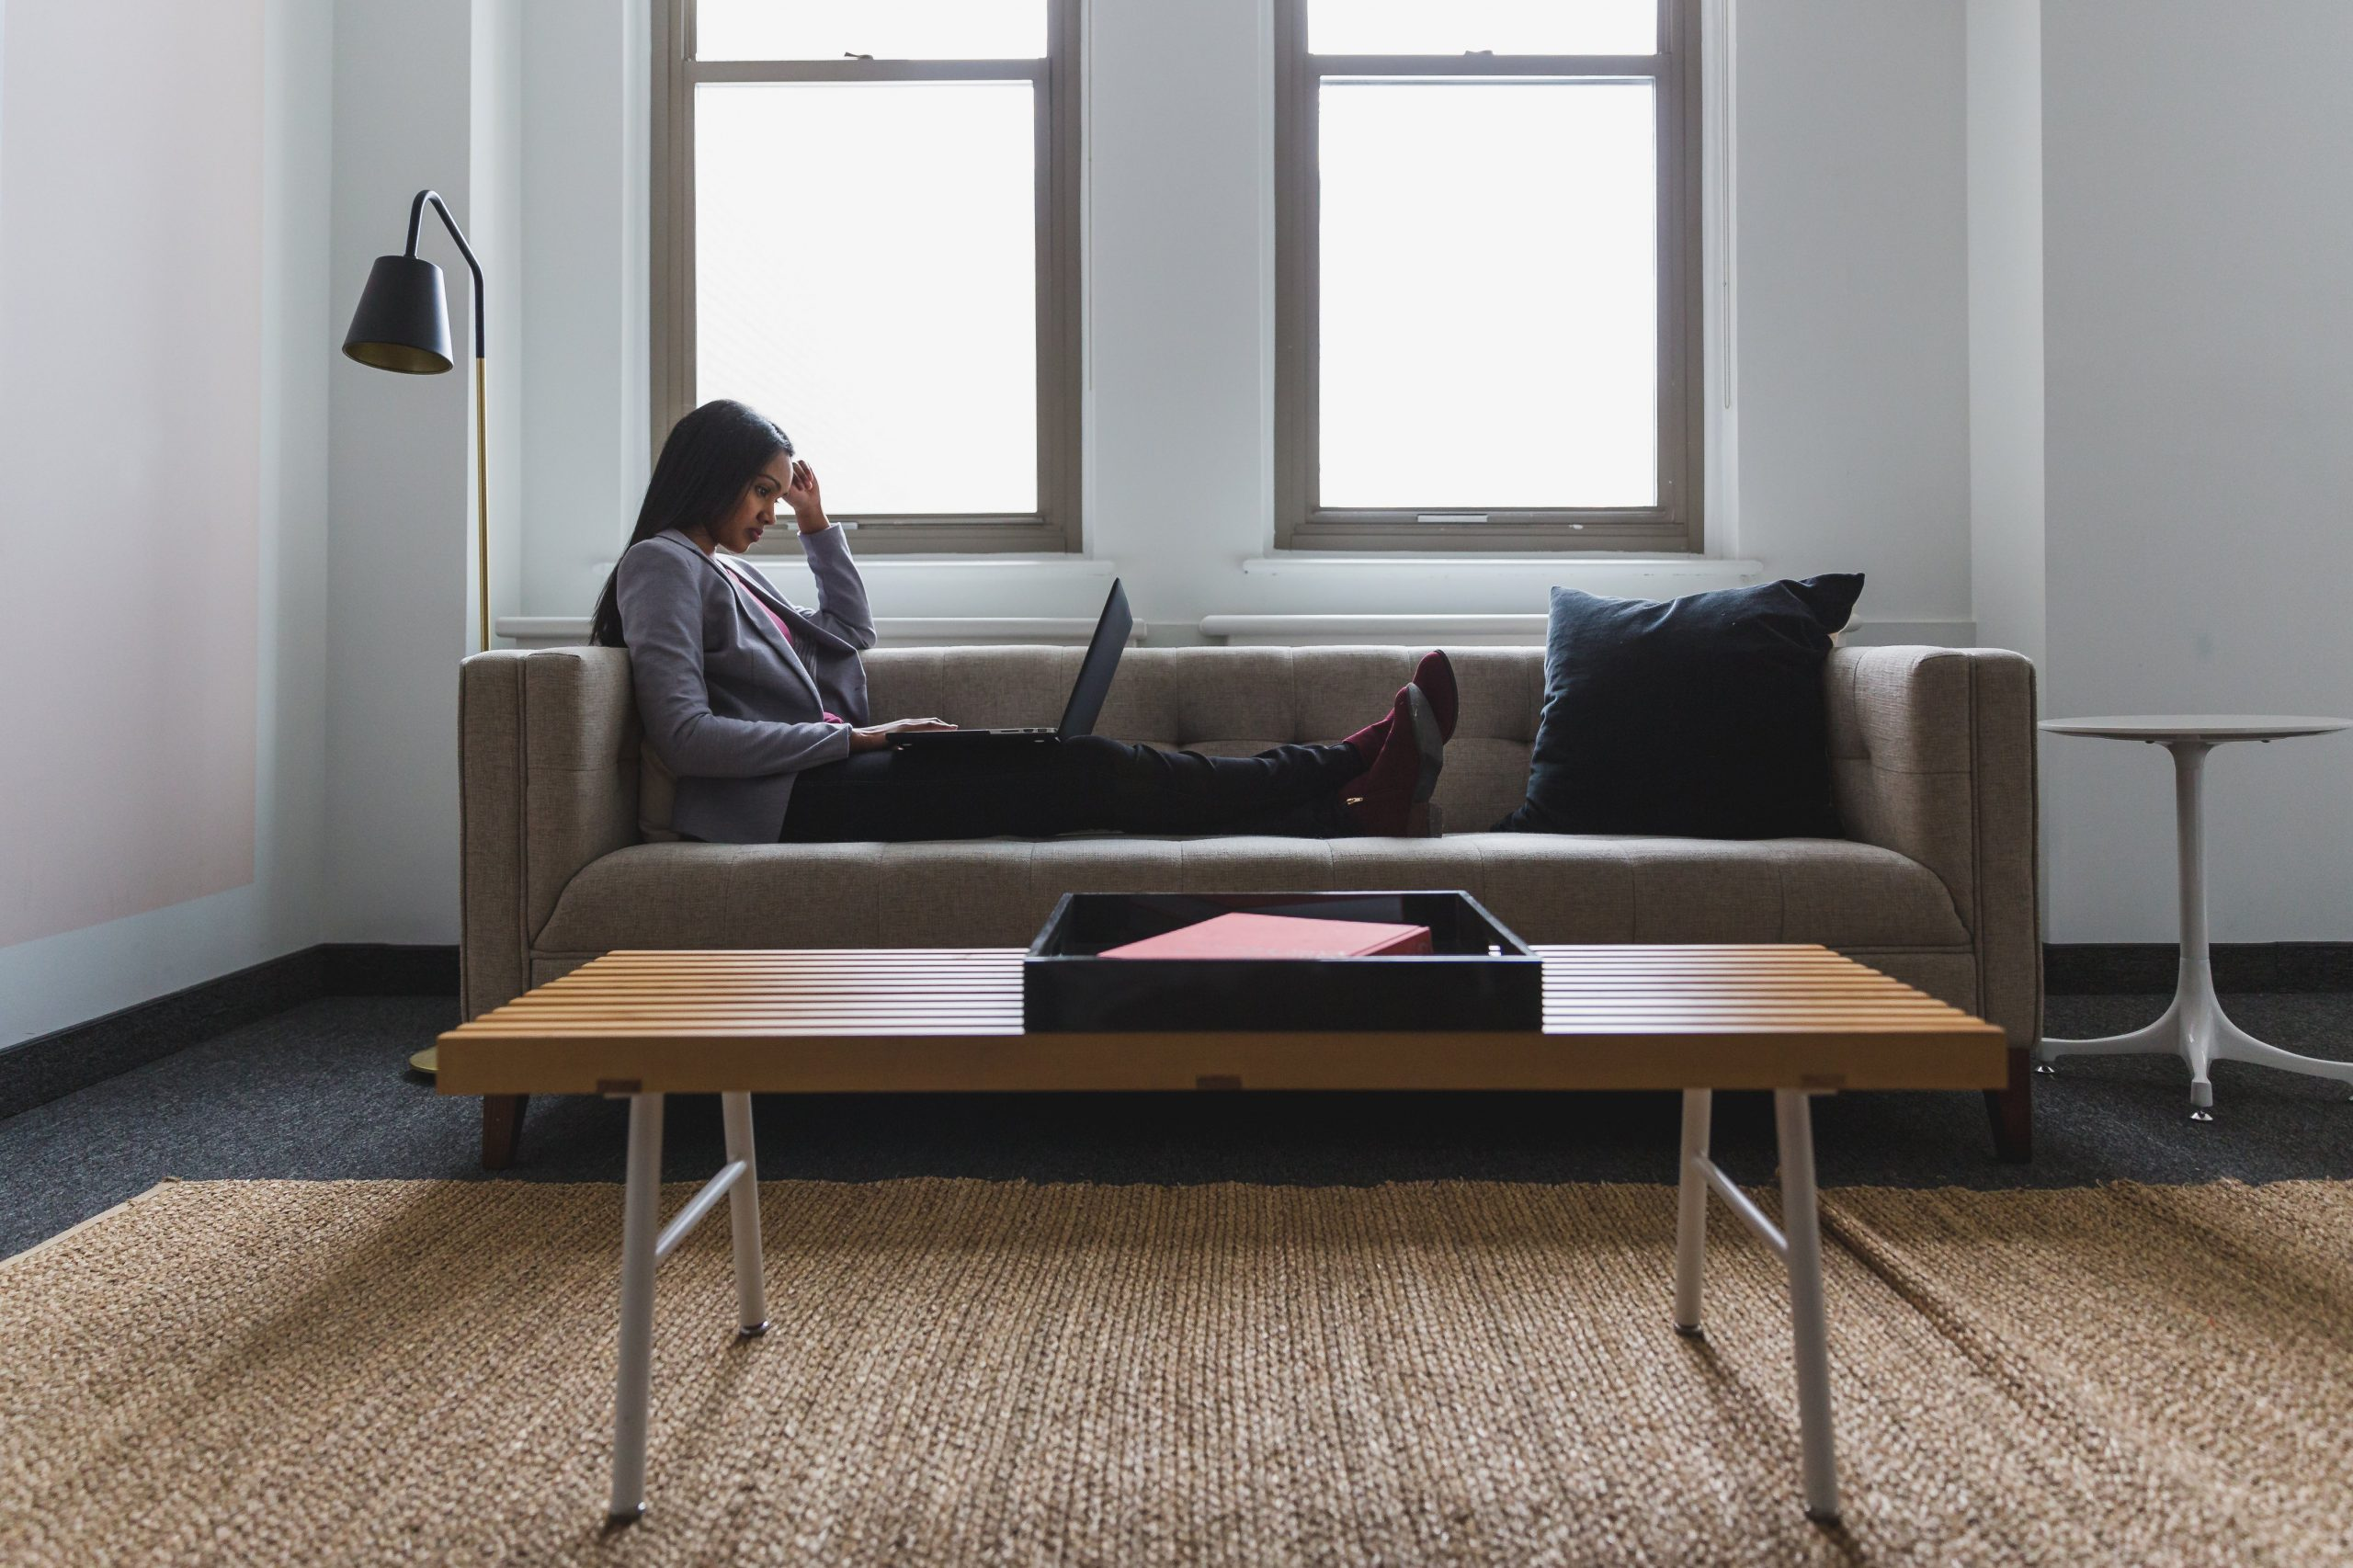 woman-relaxed-work